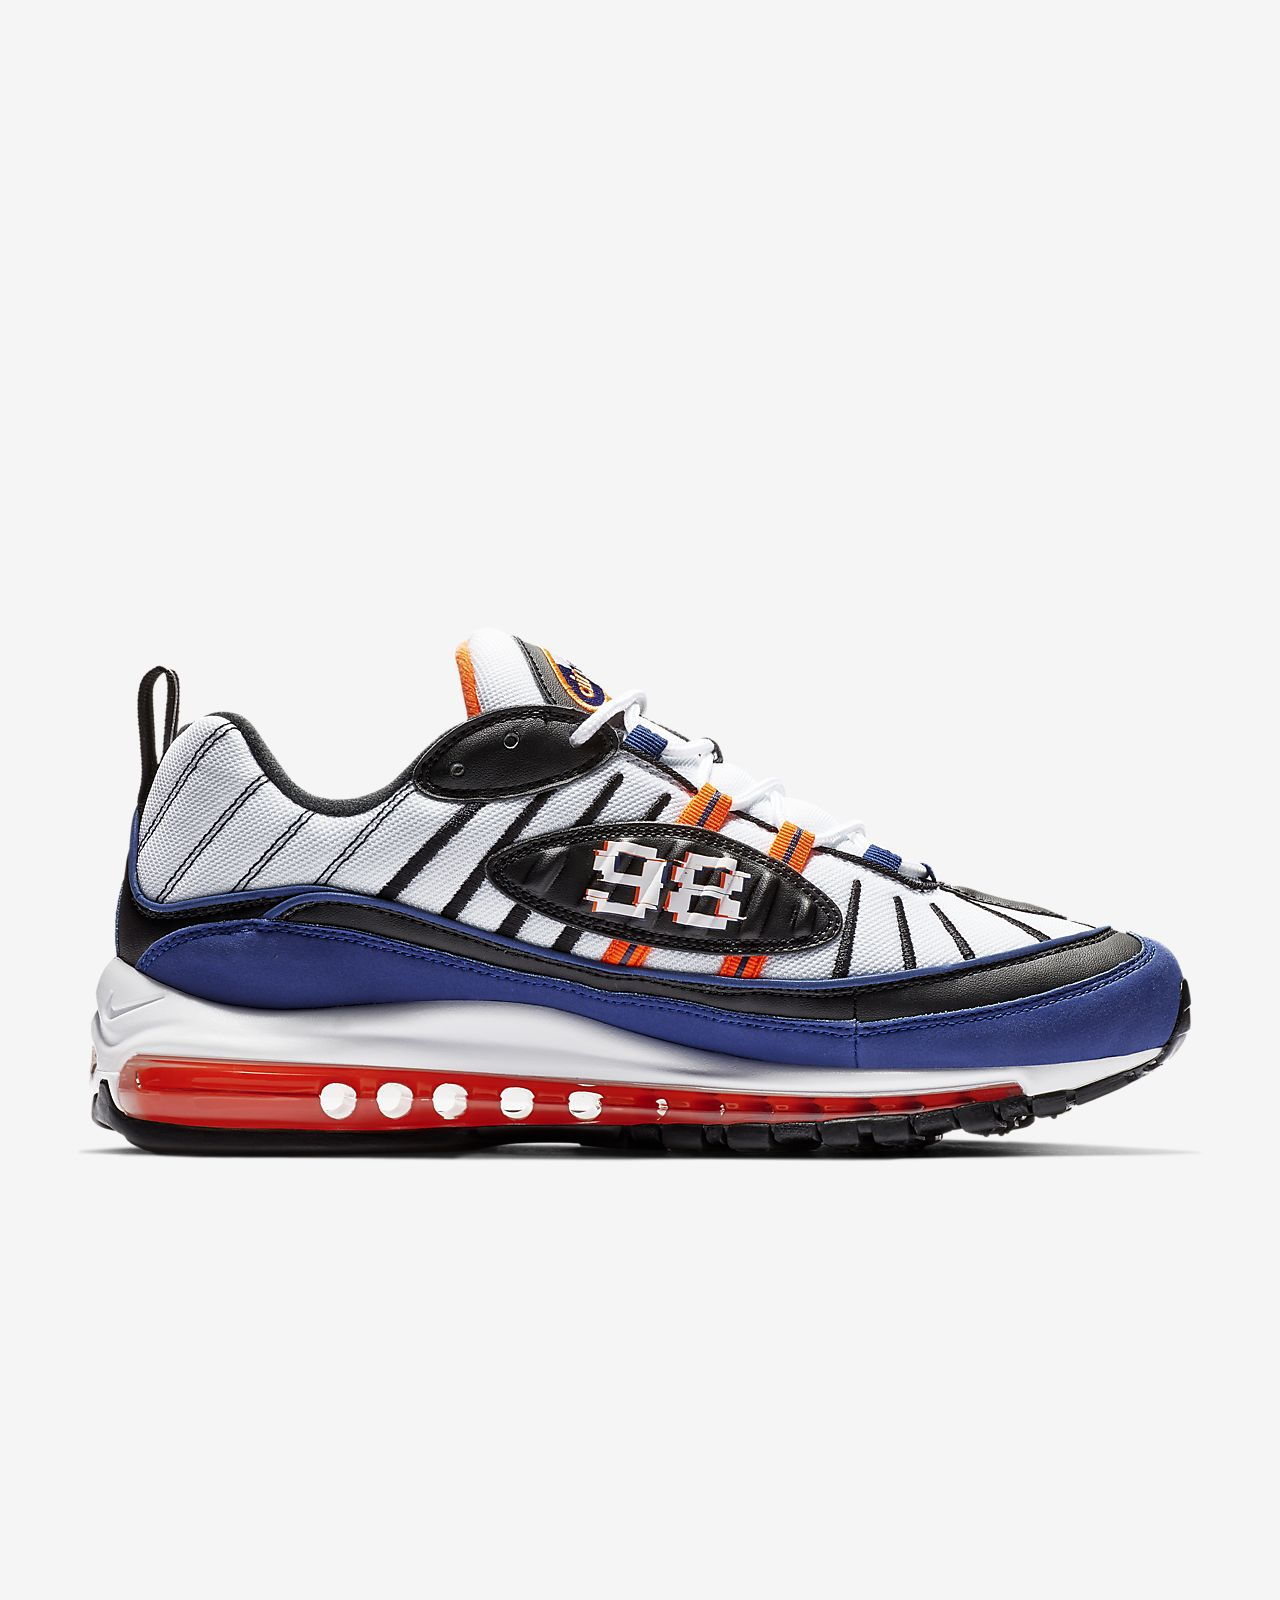 reputable site 979c7 2062a ... Chaussure Nike Air Max 98 pour Homme